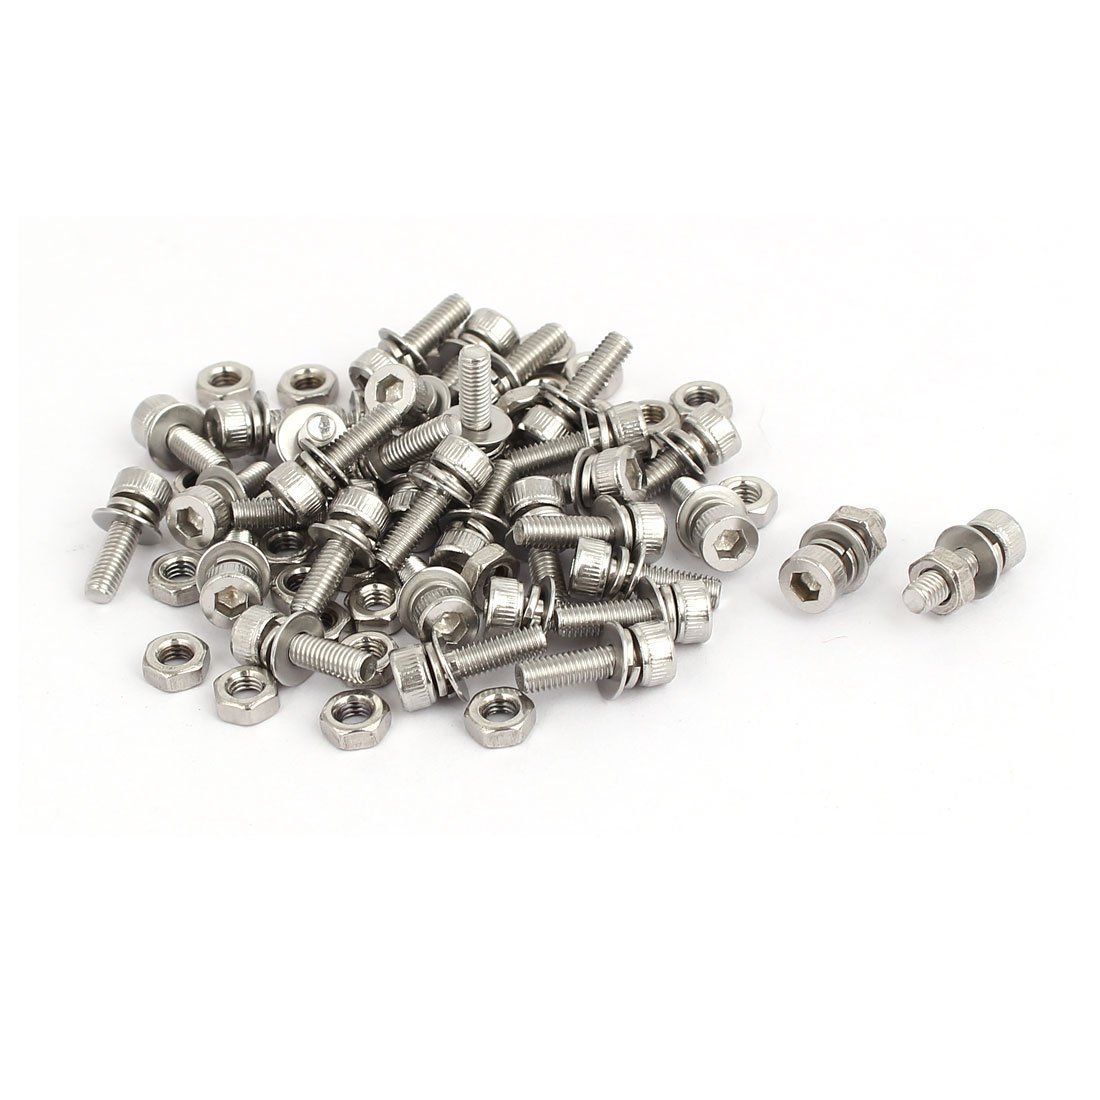 uxcell M3x10mm 304 Stainless Steel Hex Socket Head Cap Bolt Screw Nut w Washer 35 Sets